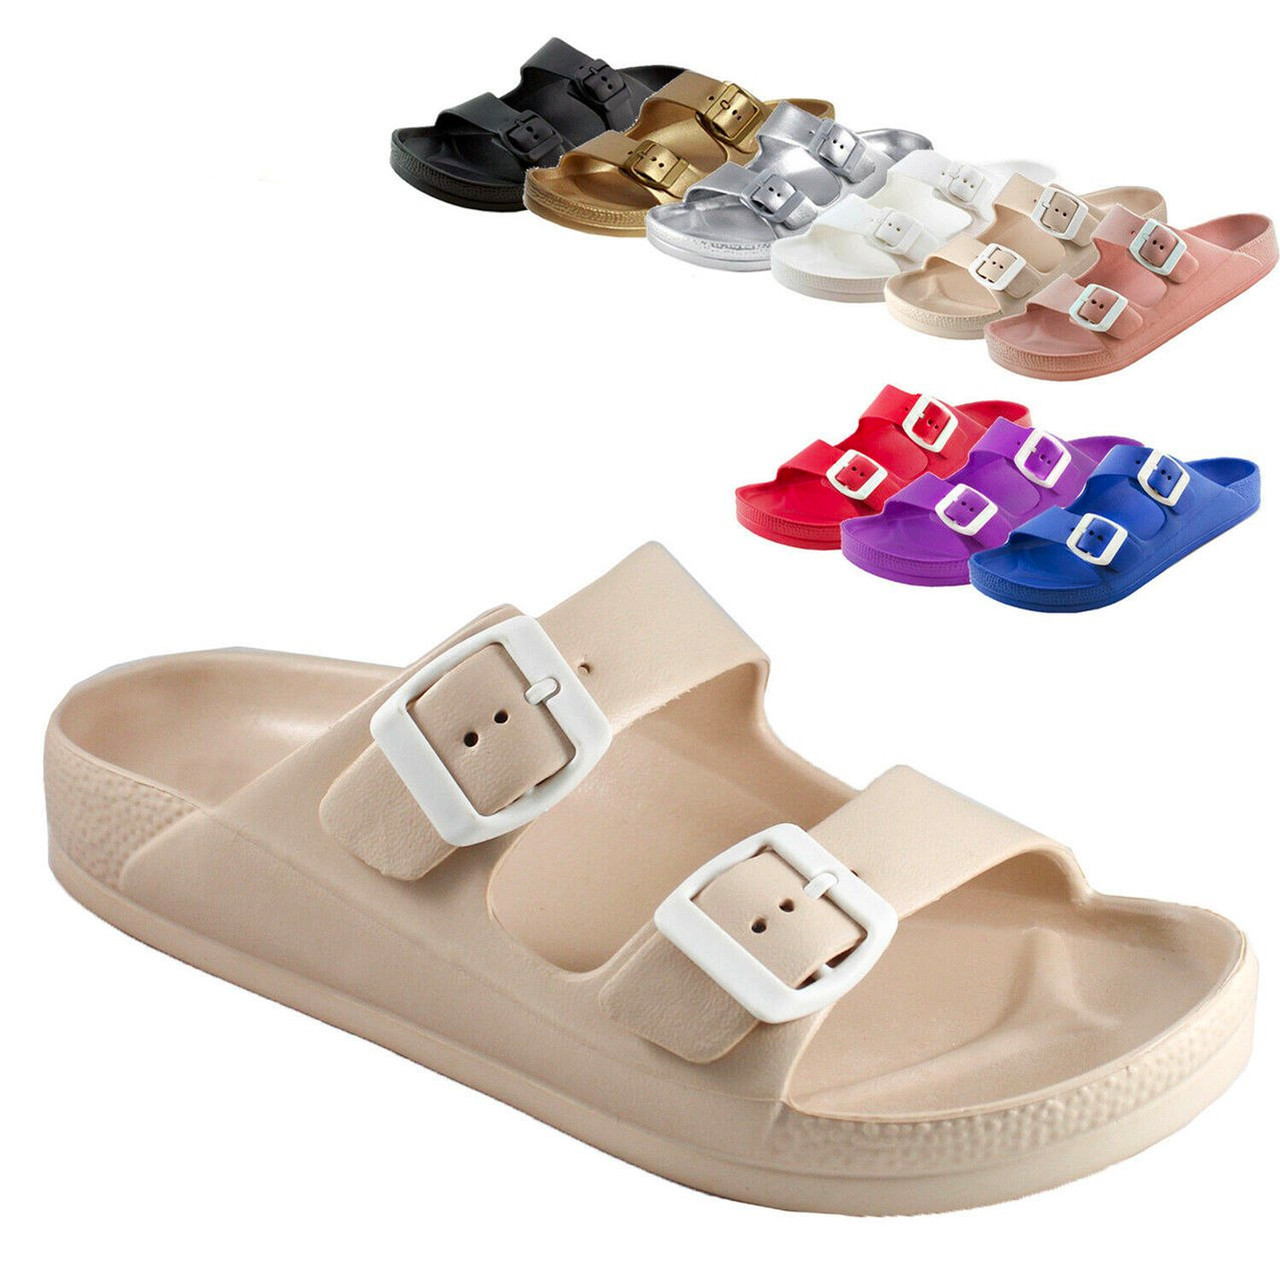 64205a0e288e Women's Lightweight Comfort Soft Slides EVA Adjustable Double Buckle Flat  Sandals (Free Shipping)